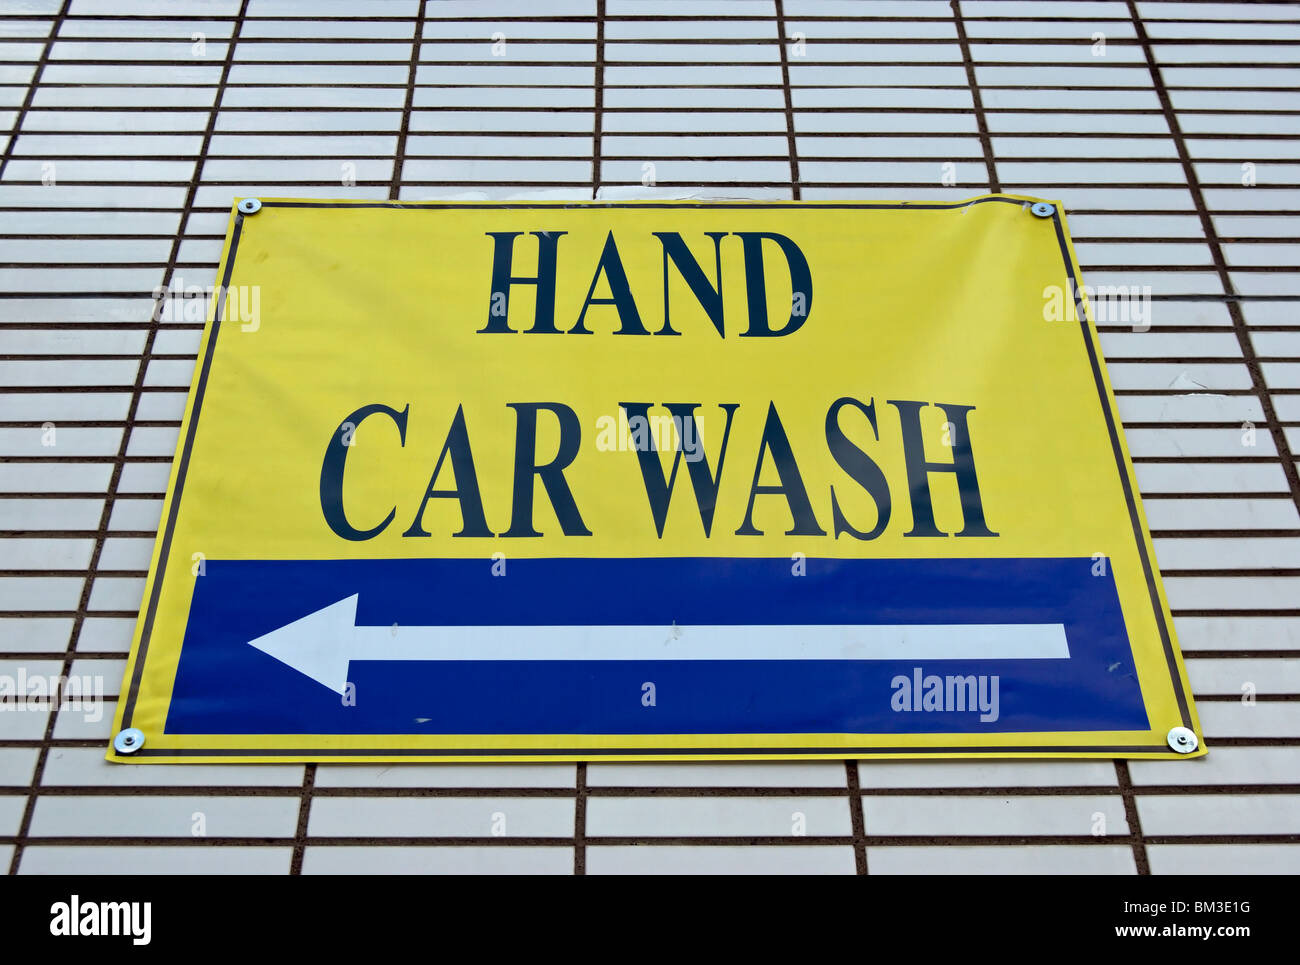 Mr. Magic Car Wash has 5 unique locations in Pittsburgh to service all of your car washing needs. We are located in Pittsburgh, Brentwood, Bridgeville, Castle Shannon, and Upper St. Clair PA.